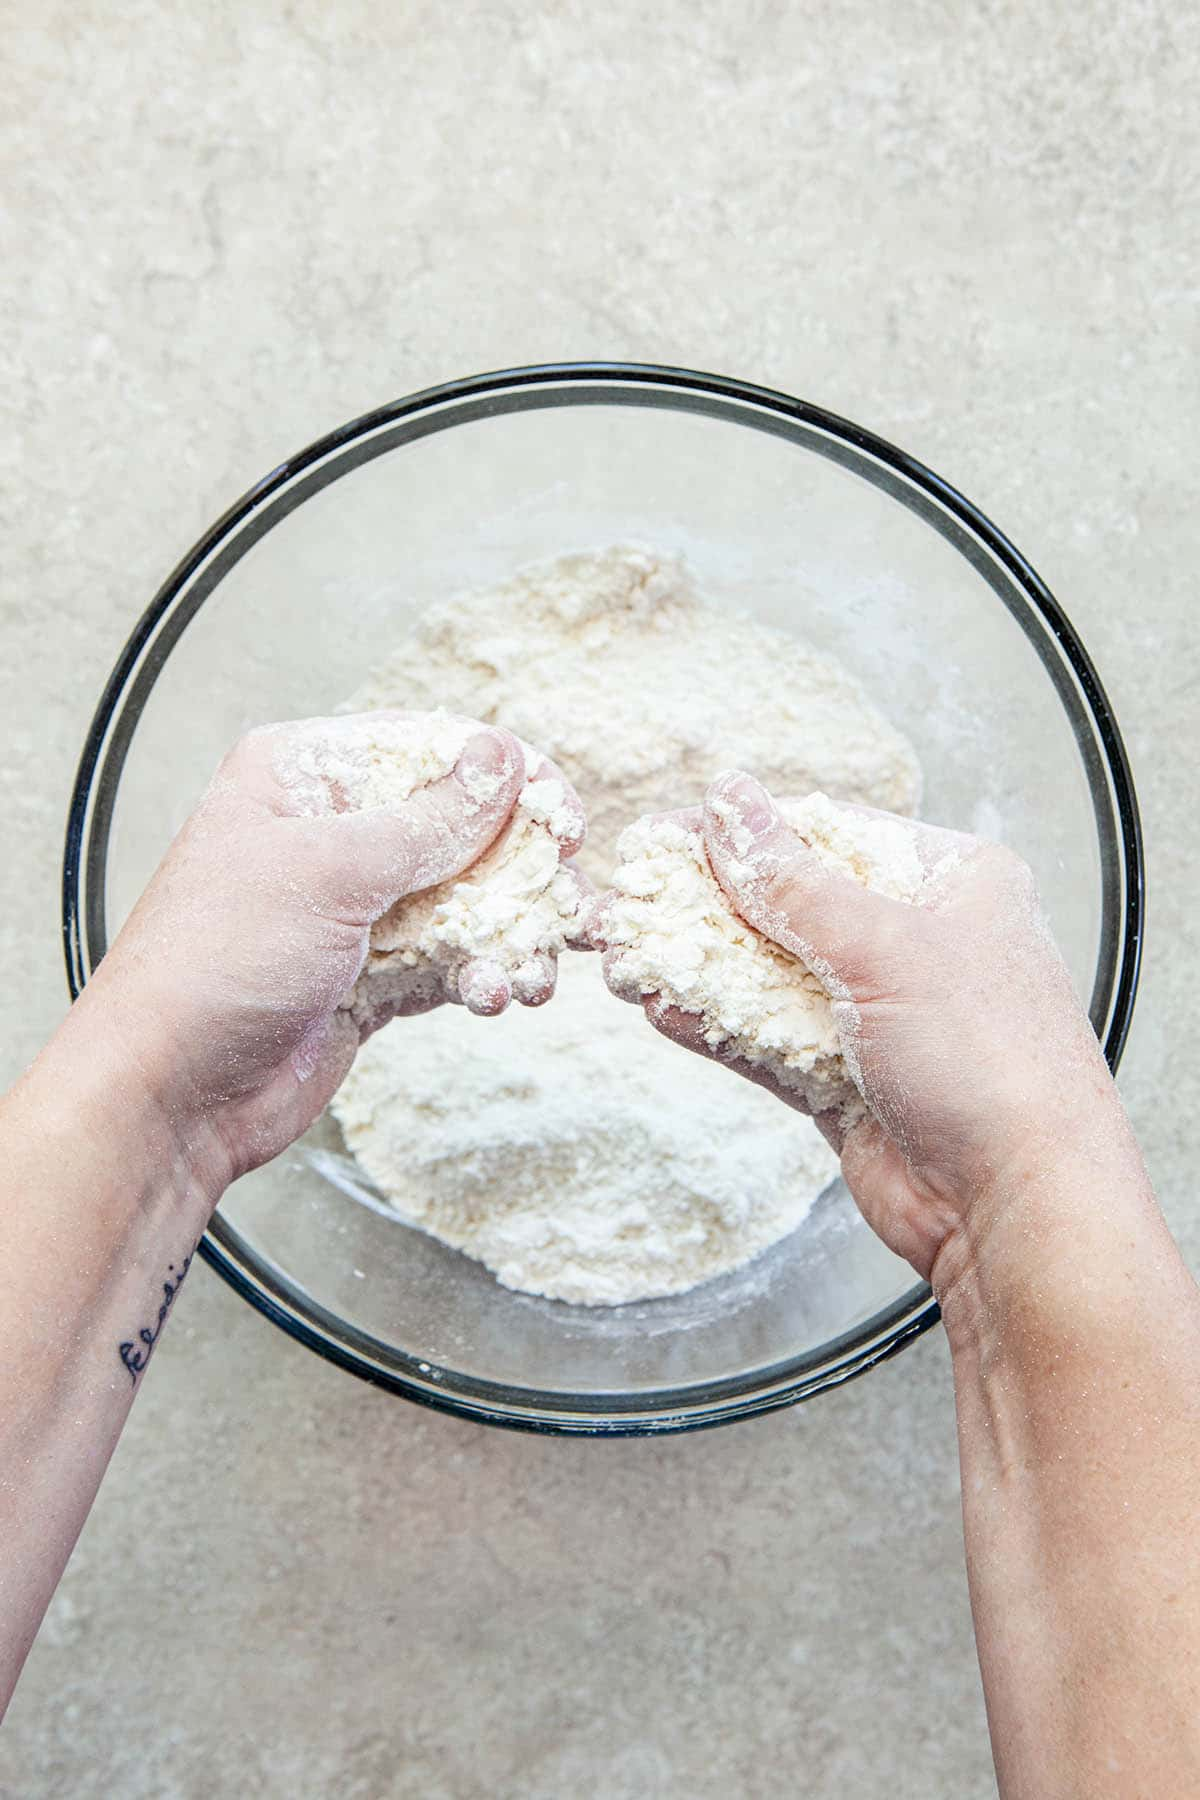 Two hands rubbing butter into flour in a glass bowl.